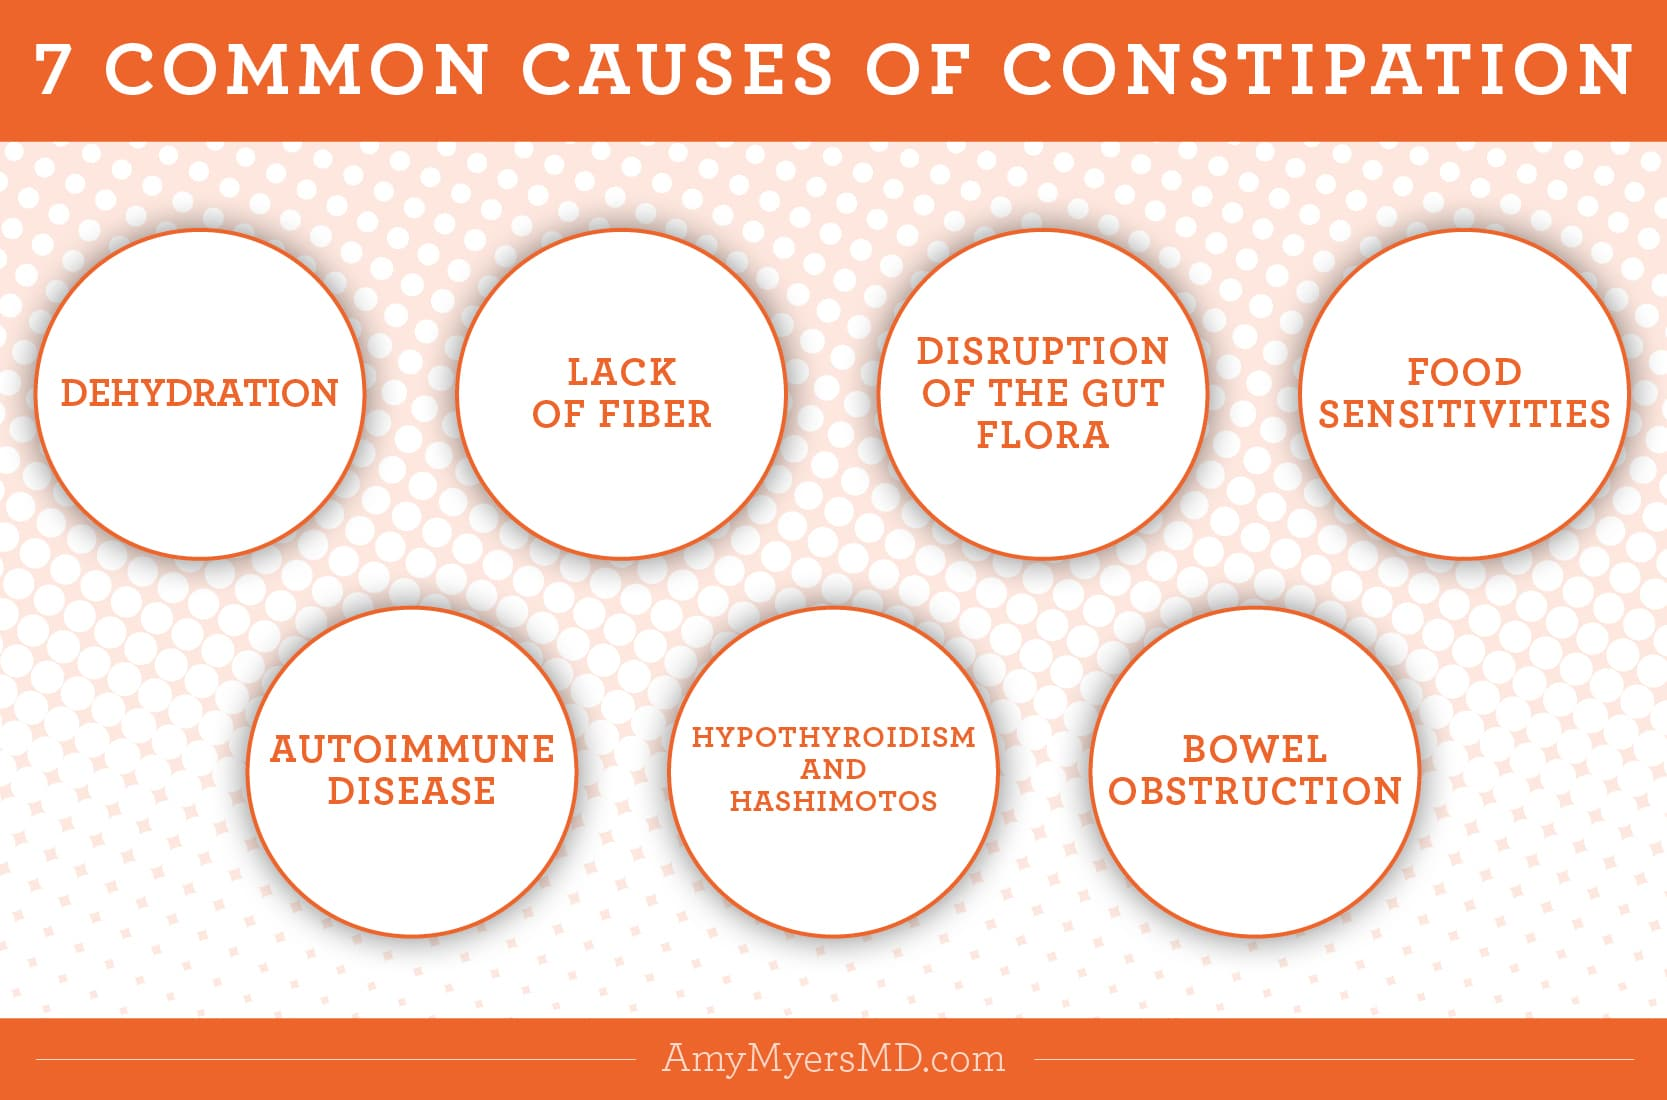 7 common causes of constipation